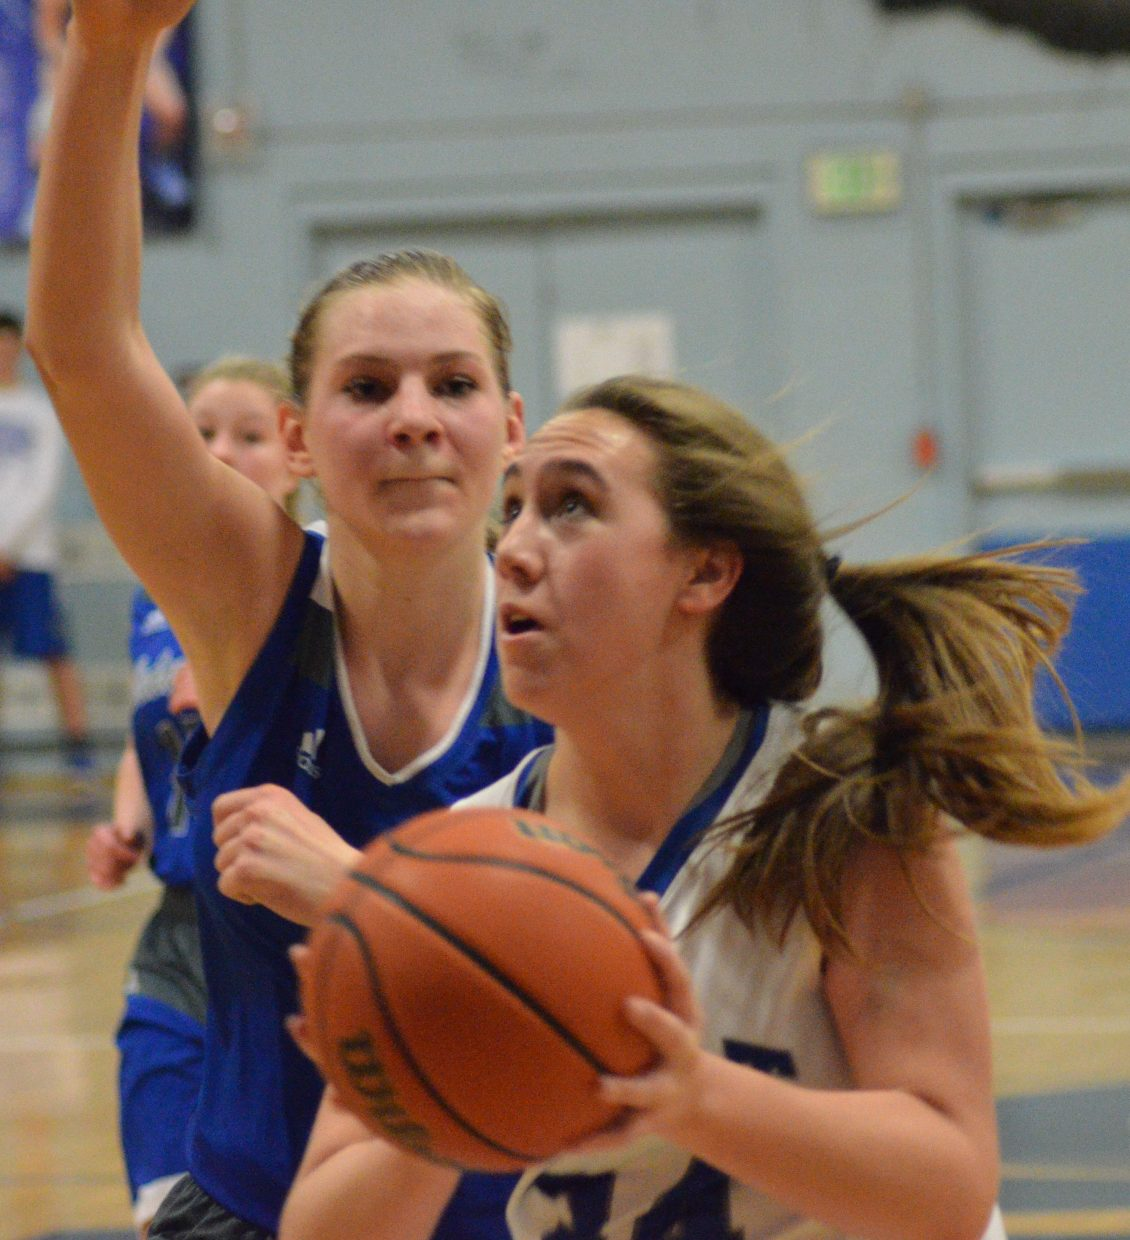 Moffat County High School's Amber Salazar dashes in for a layup during girls JV basketball.